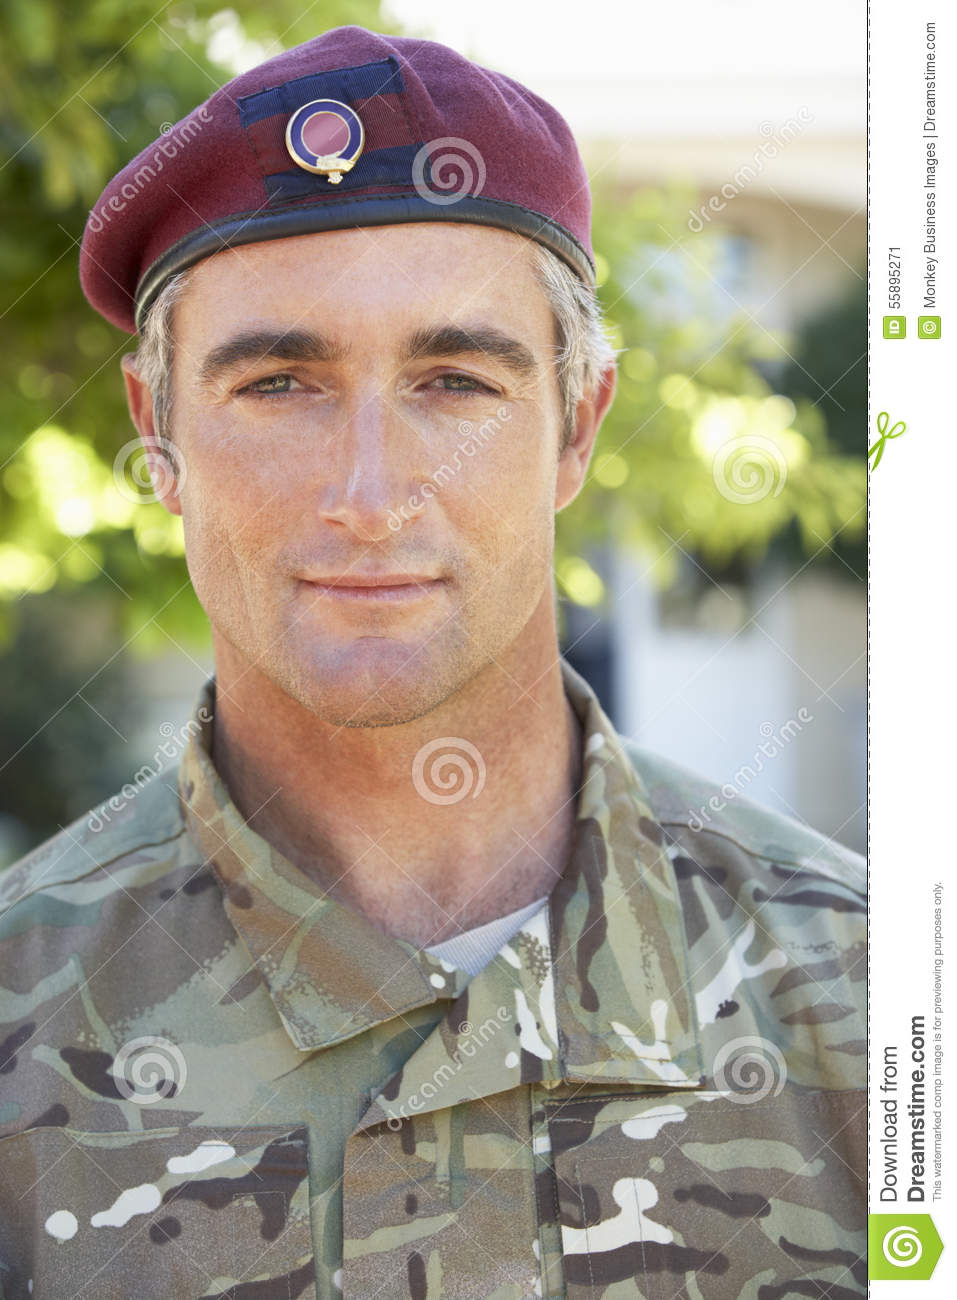 Retrato del soldado Wearing Uniform